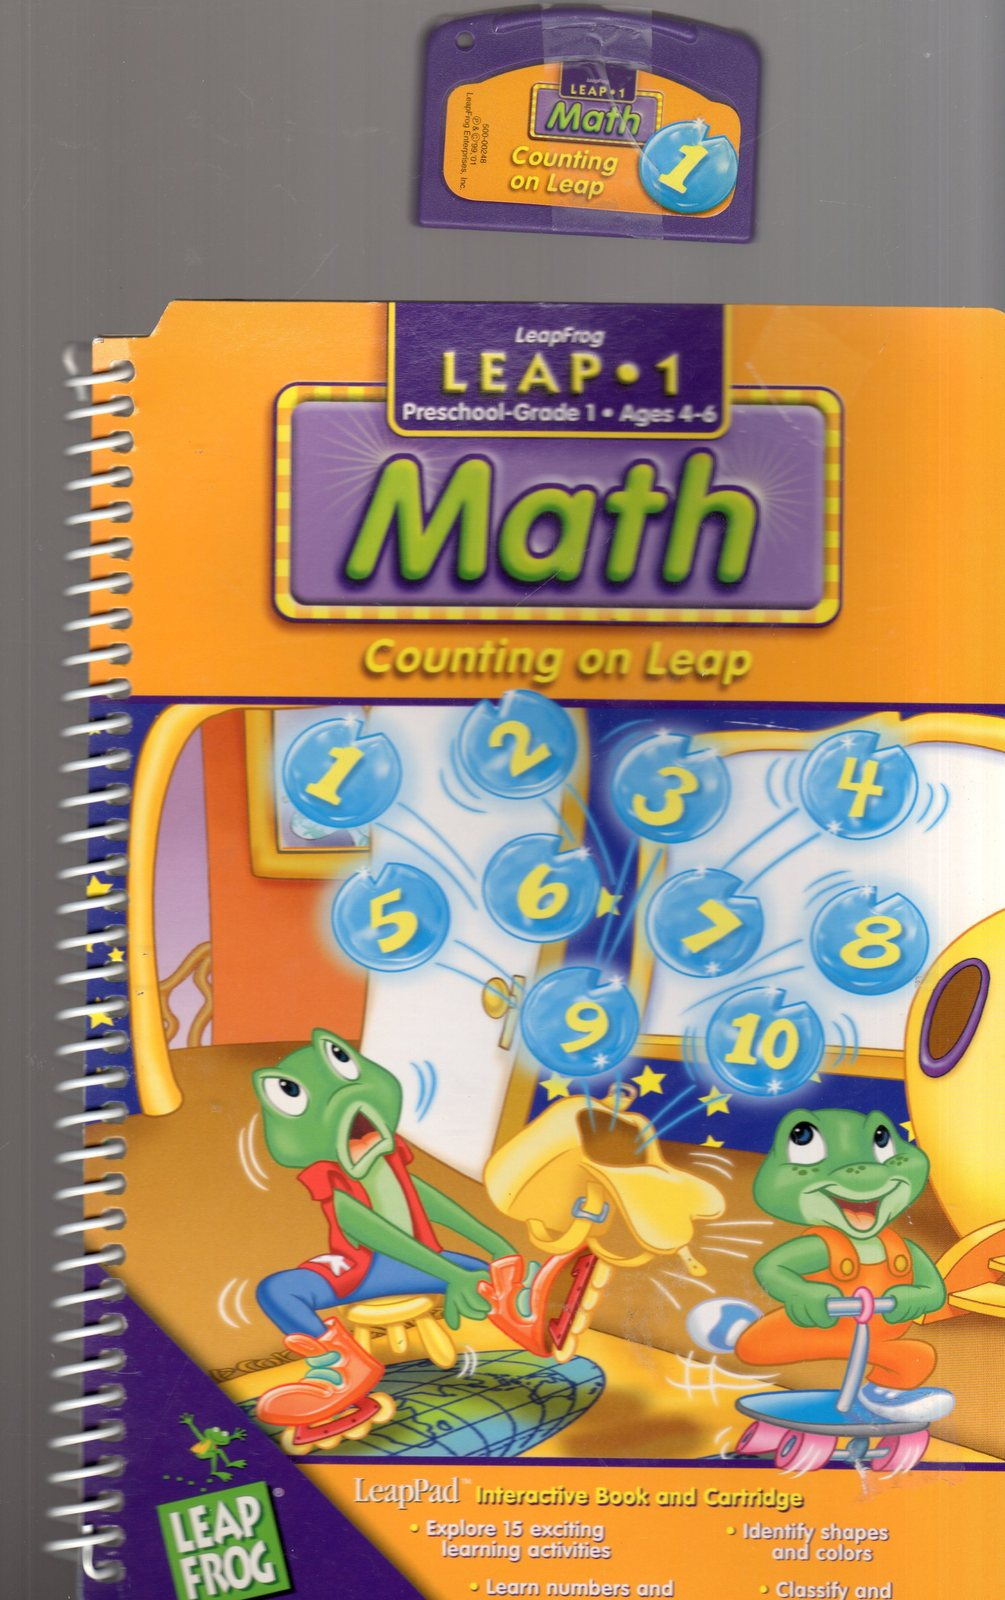 "LeapFrog Leap 1 - MATH  ""COUNTING ON LEAP"" - Preschool , Grade 1 Ages 4 - 6"